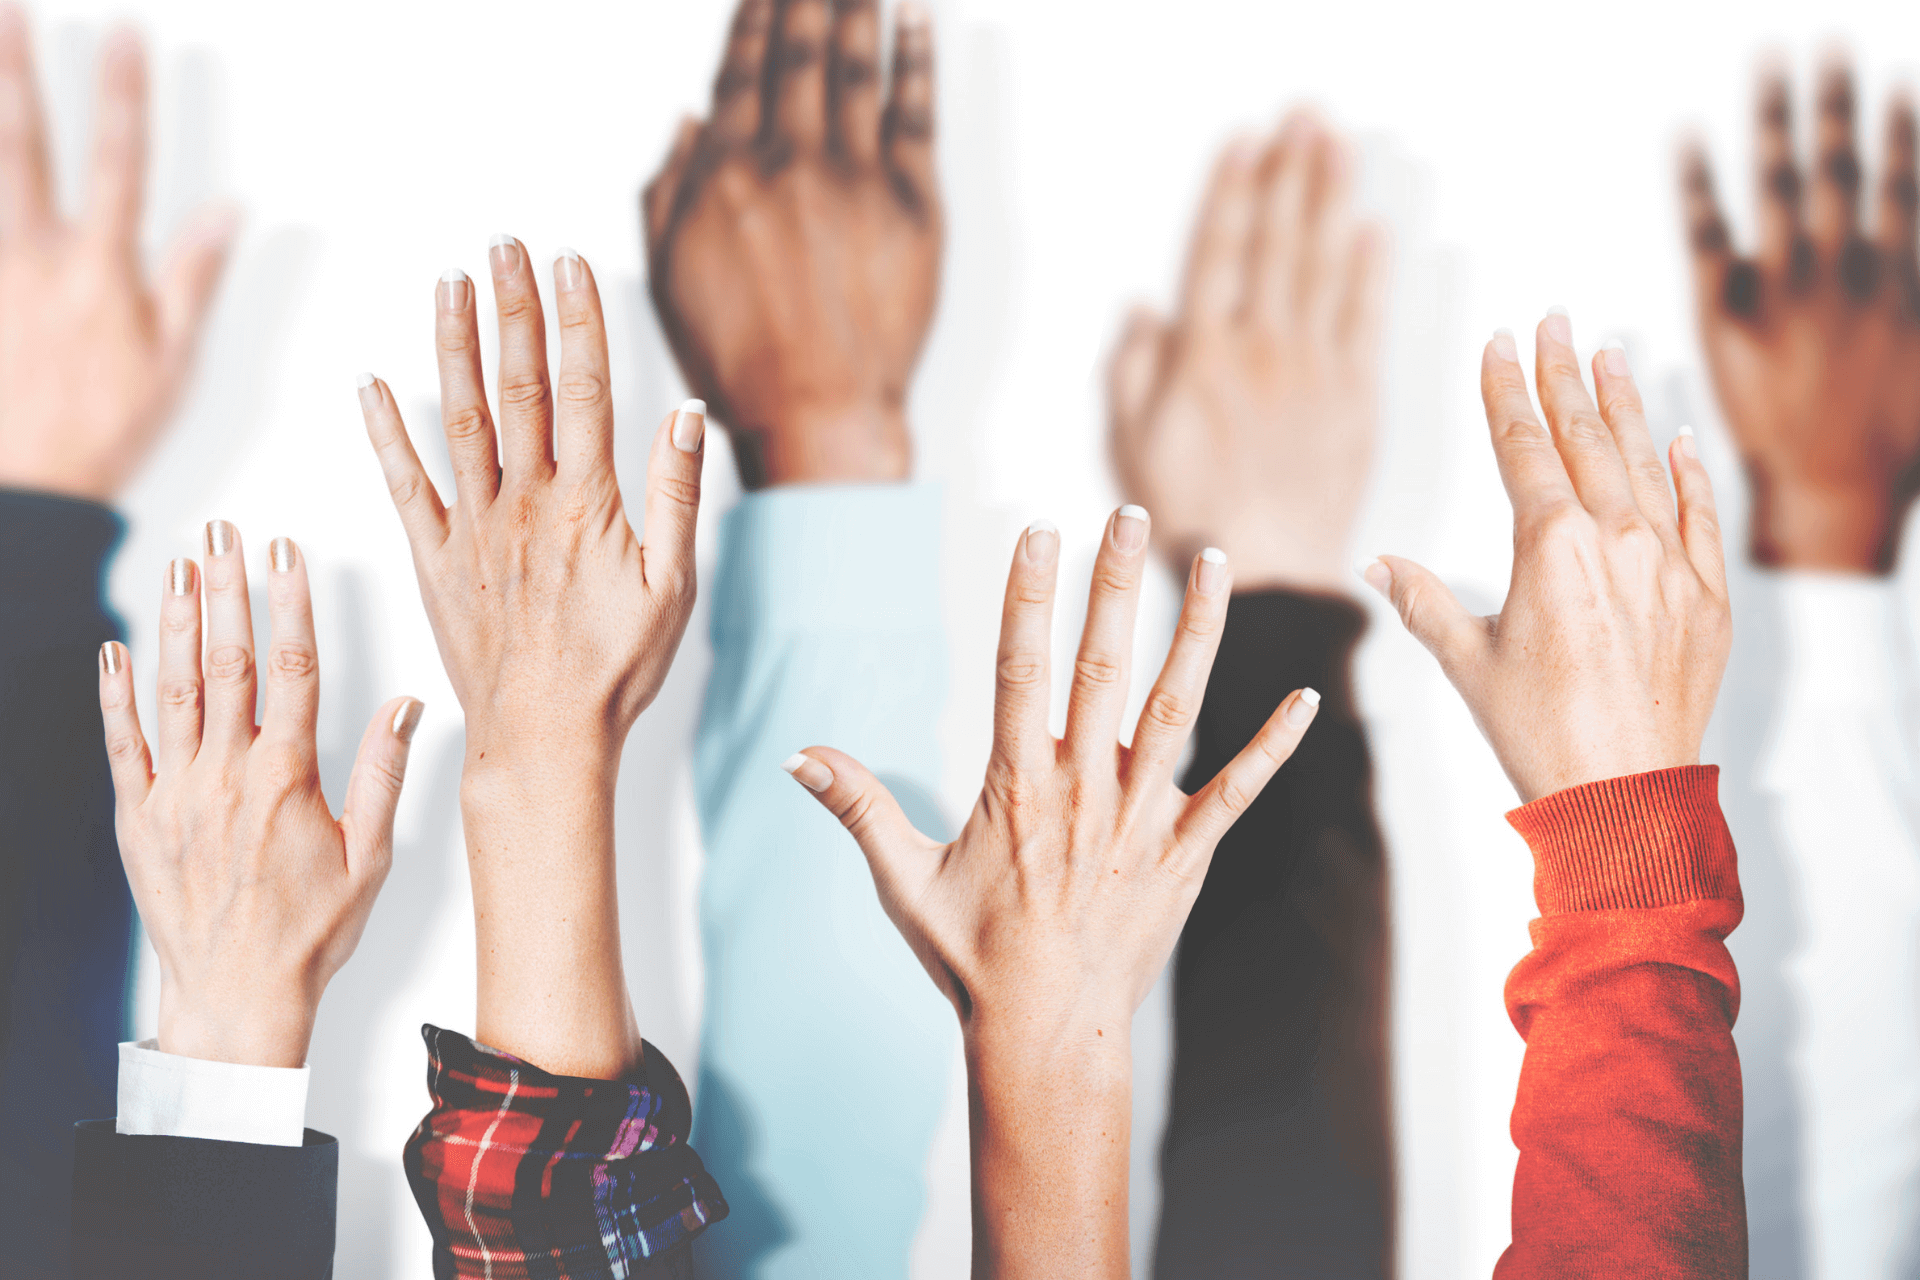 This image shows raised hands supporting the article's idea about successful volunteer programs for nonprofits